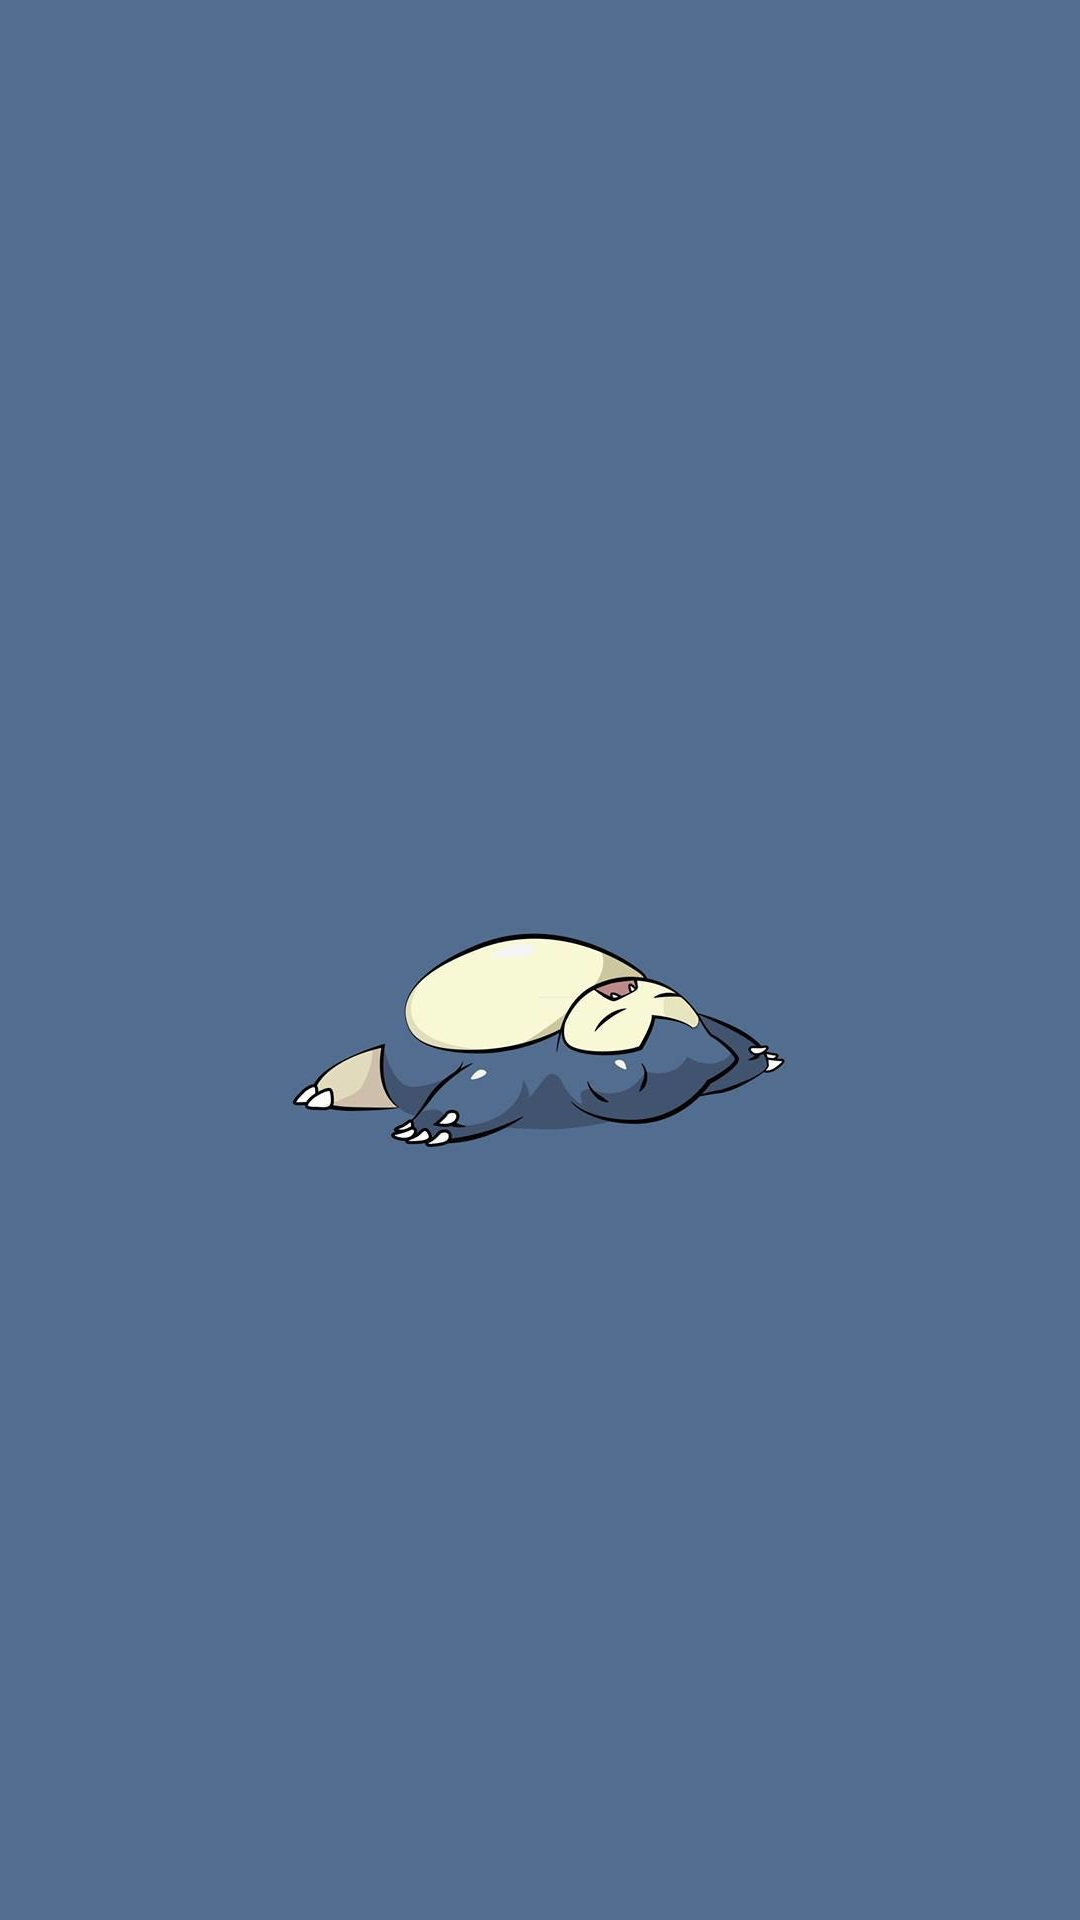 Snorlax Pokemon iPhone 6 HD Wallpaper HD   Download 1080x1920